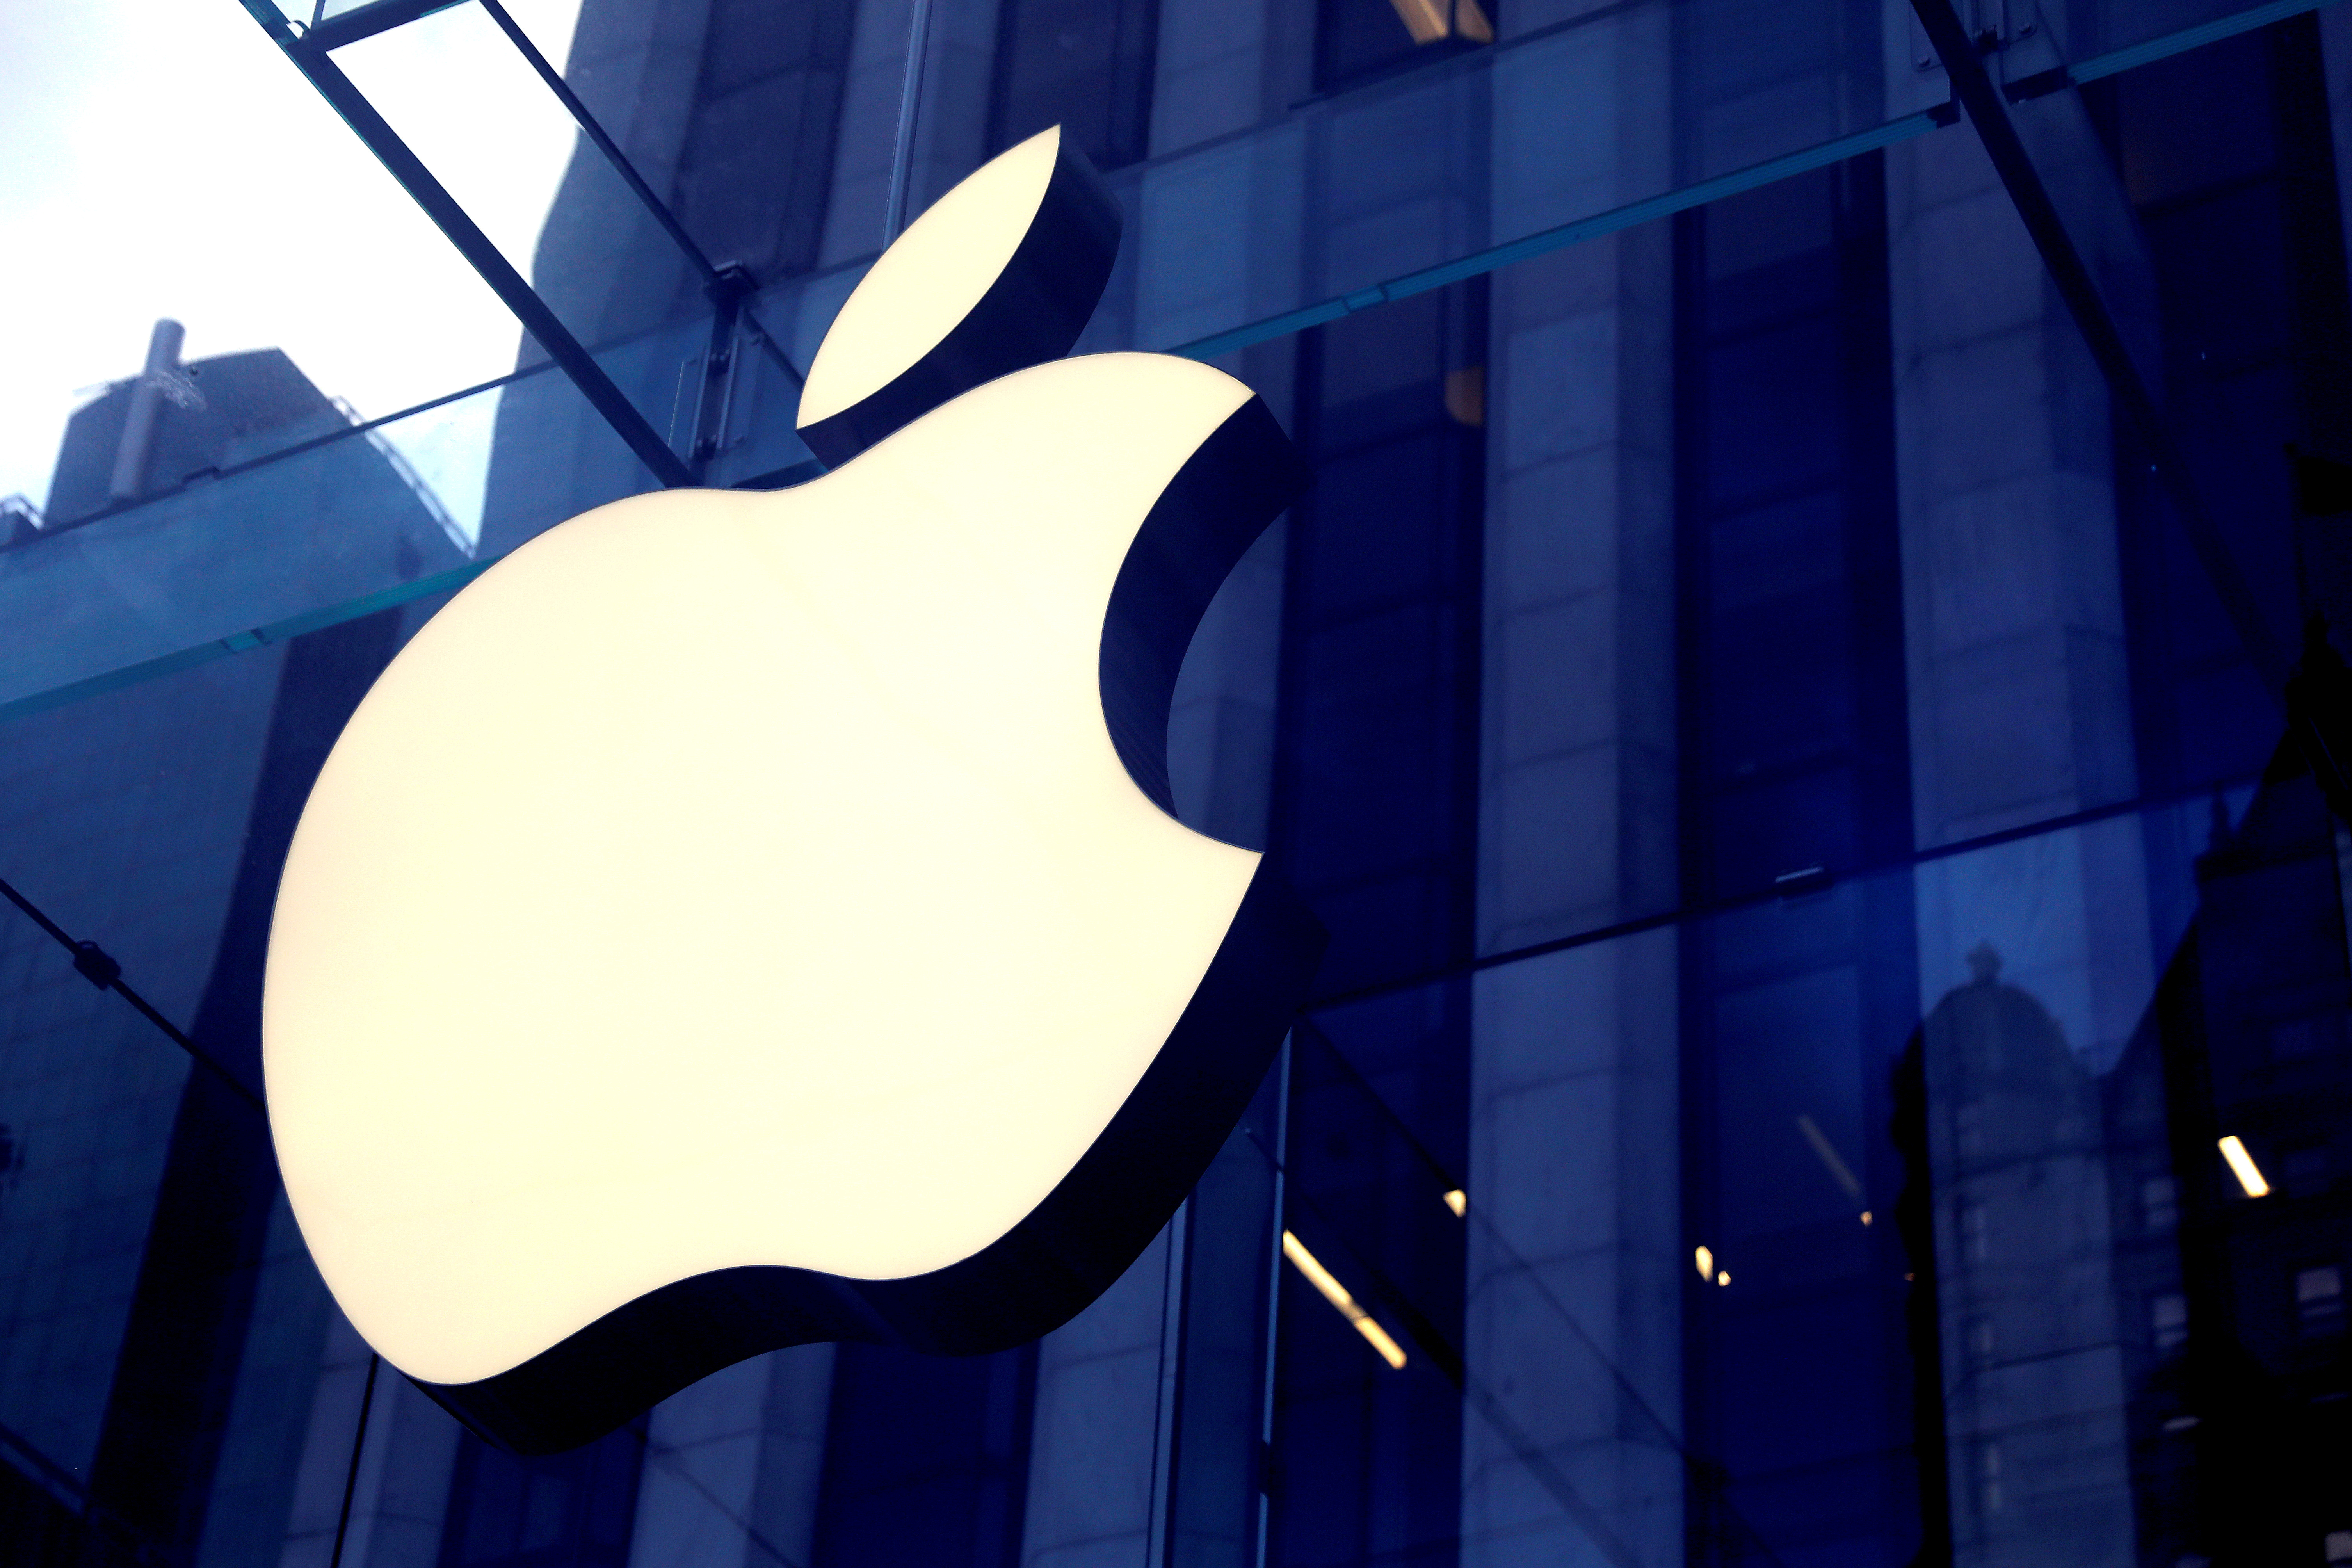 The Apple Inc logo is seen hanging at the entrance to the Apple store on 5th Avenue in Manhattan, New York, U.S., October 16, 2019. REUTERS/Mike Segar/File Photo/File Photo